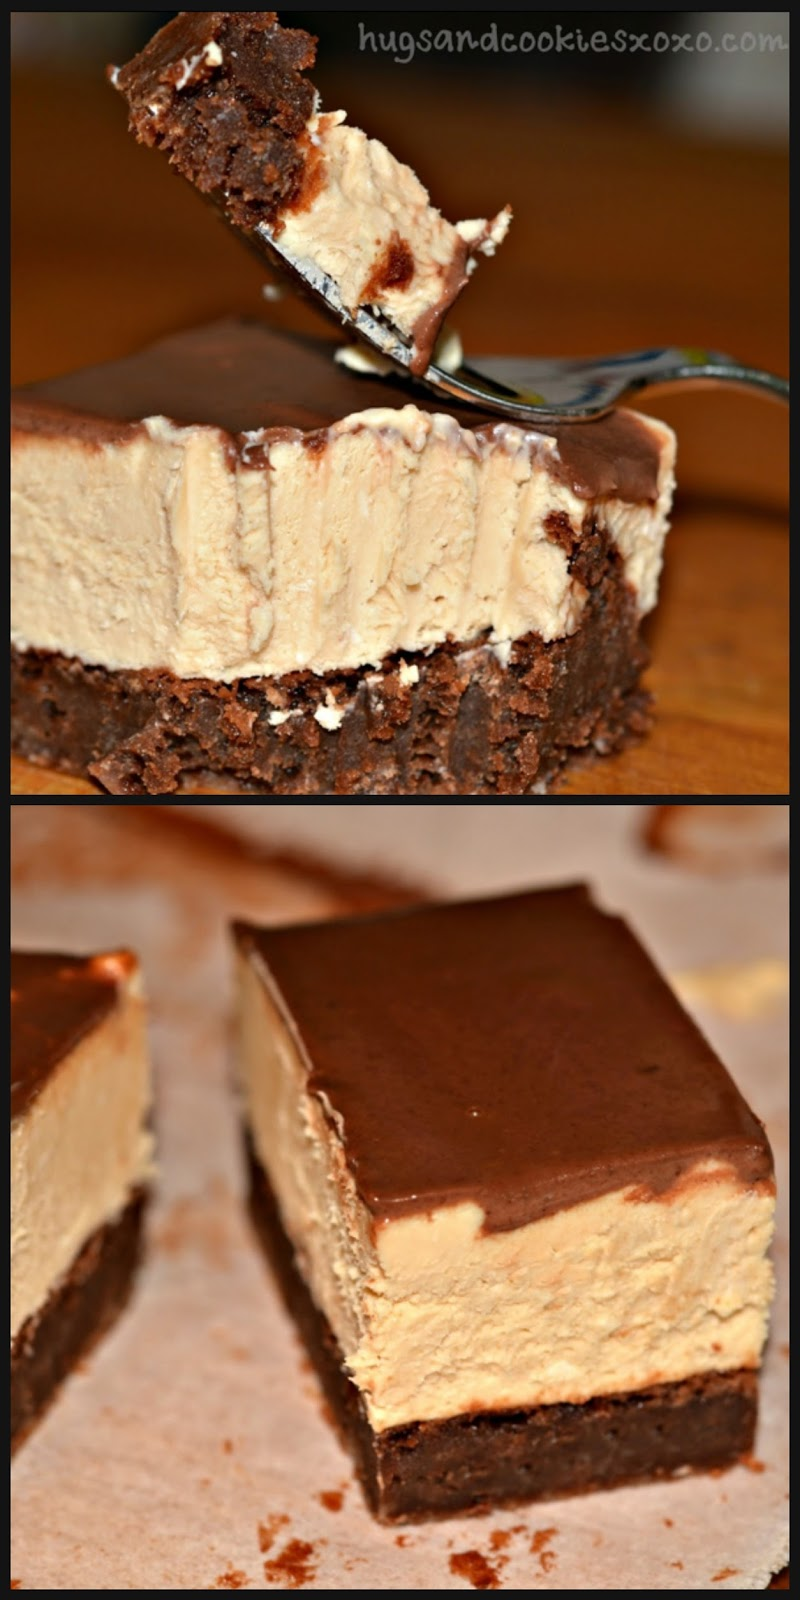 PEANUT BUTTER CHEESECAKE BROWNIE BARS WITH GANACHE - Hugs and Cookies ...